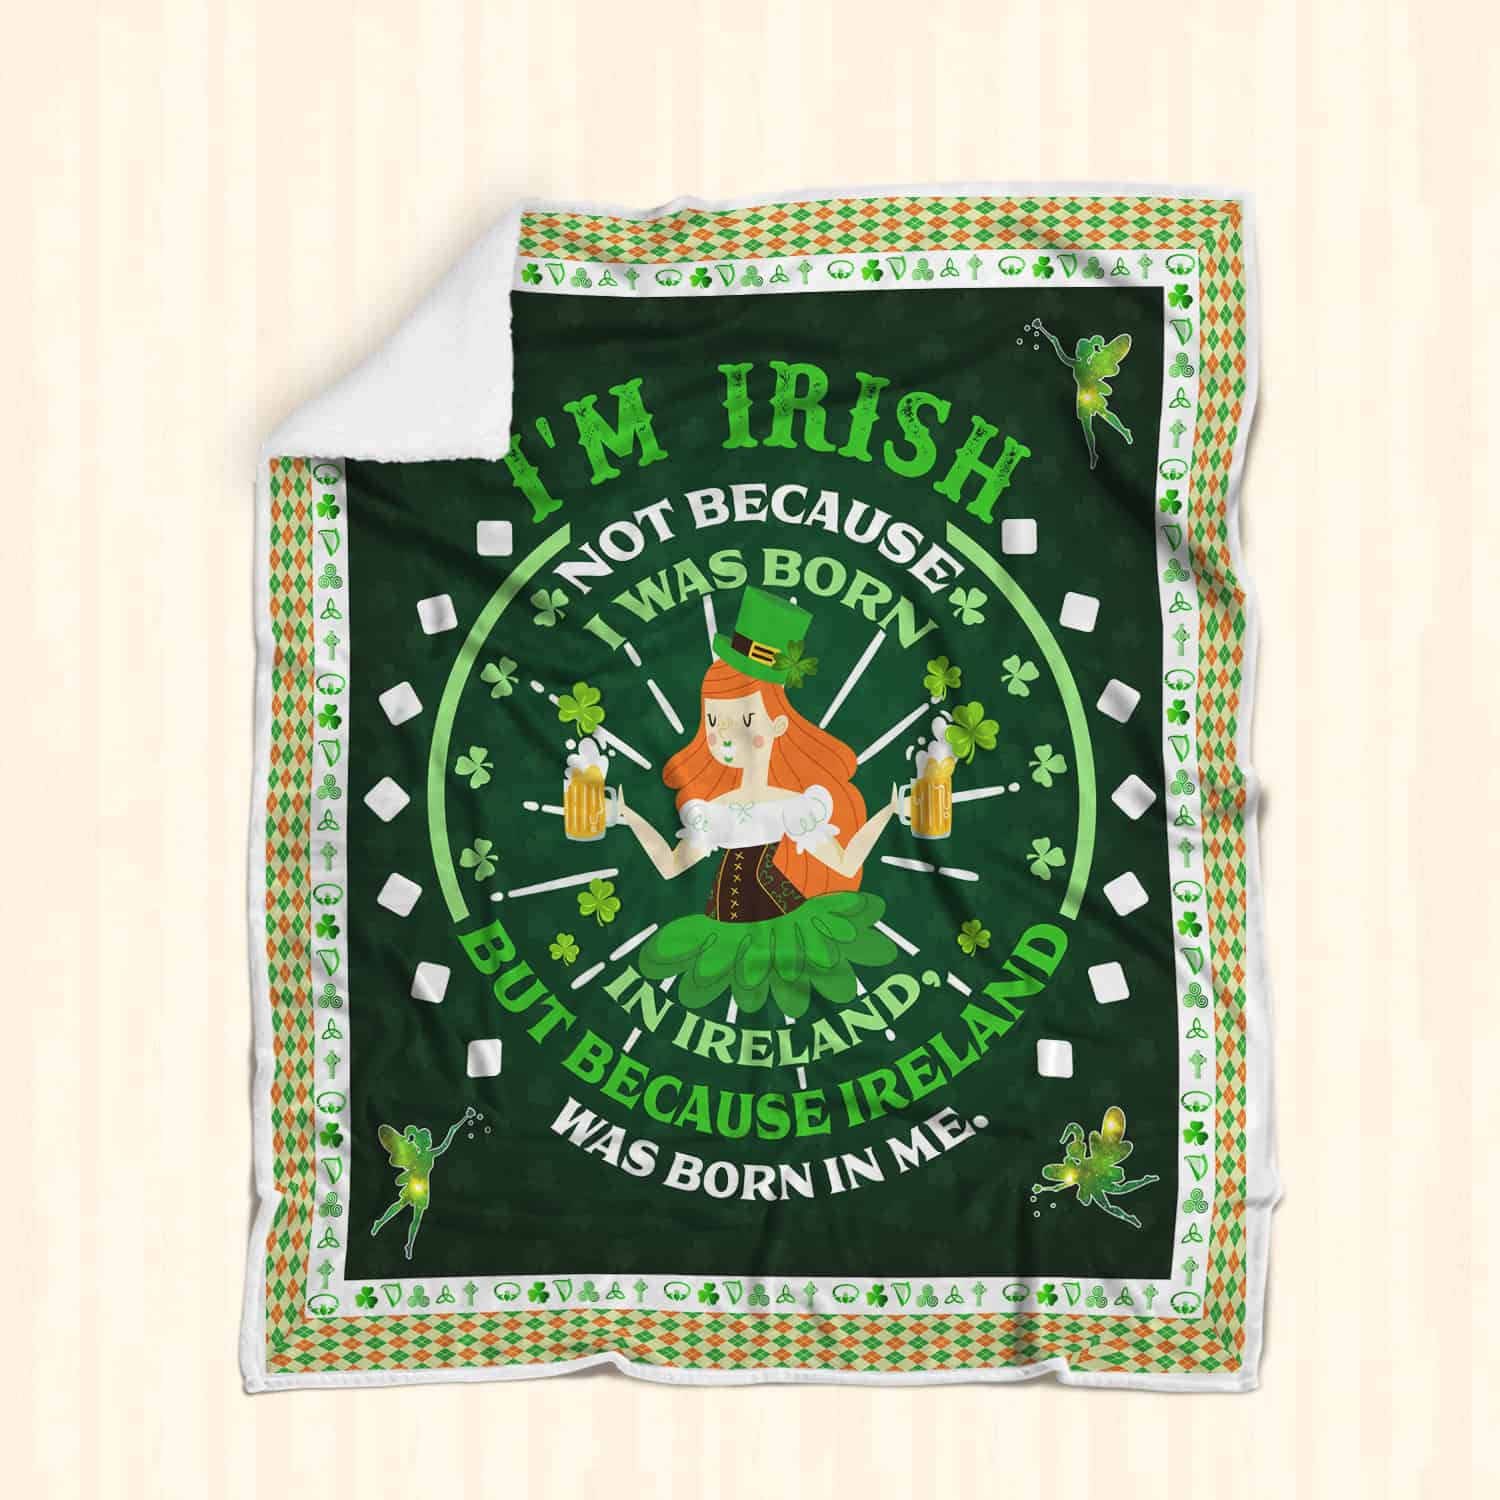 st patricks day ireland was born in me all over printed blanket 3